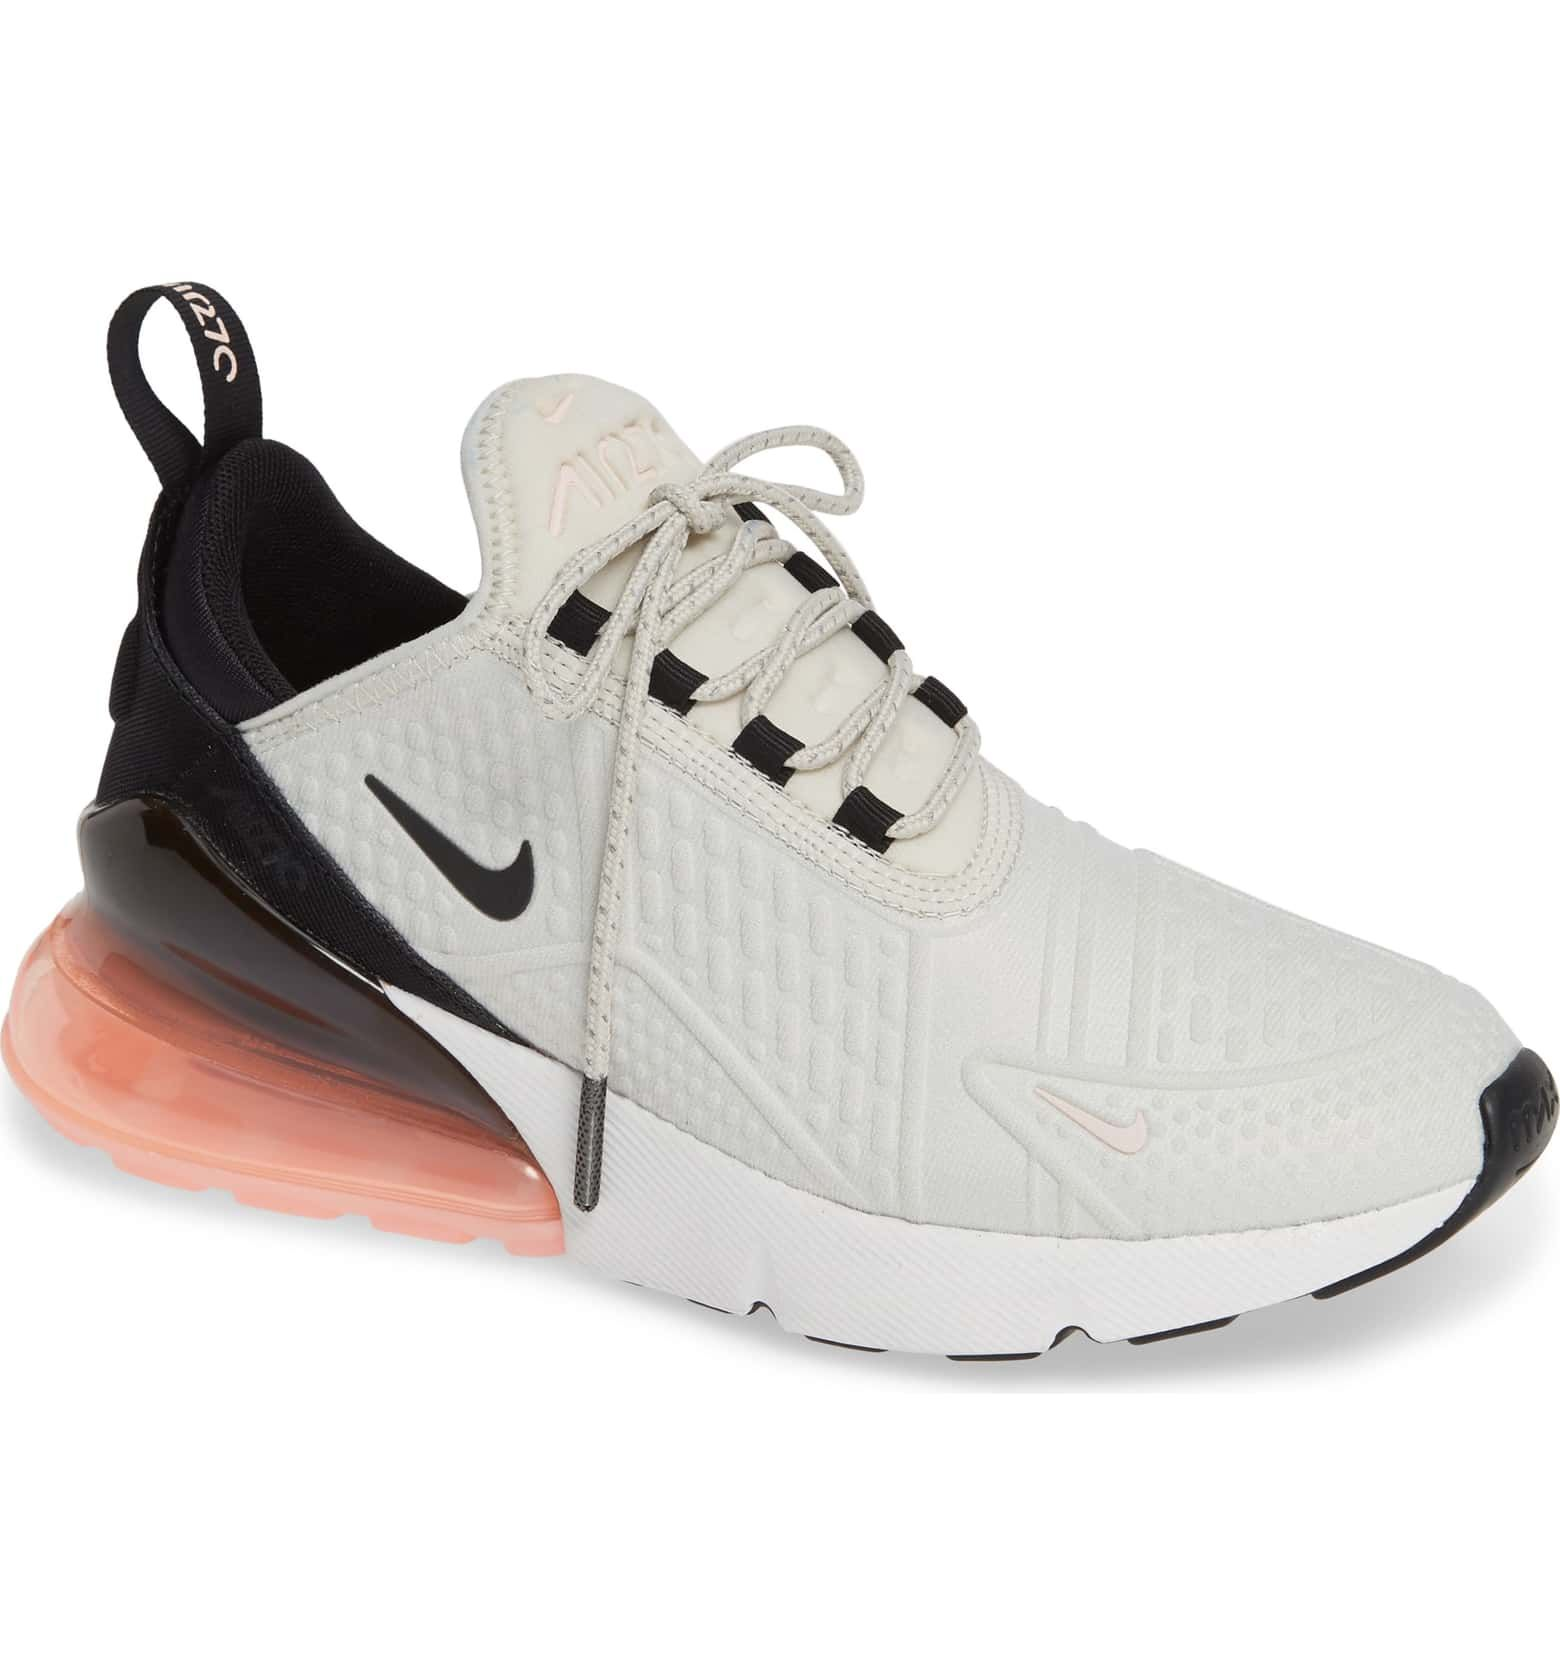 new styles 8e719 3c79b Air Max 270 Premium Sneaker, Main, color, LIGHT BONE/ BLACK- PINK- WHITE